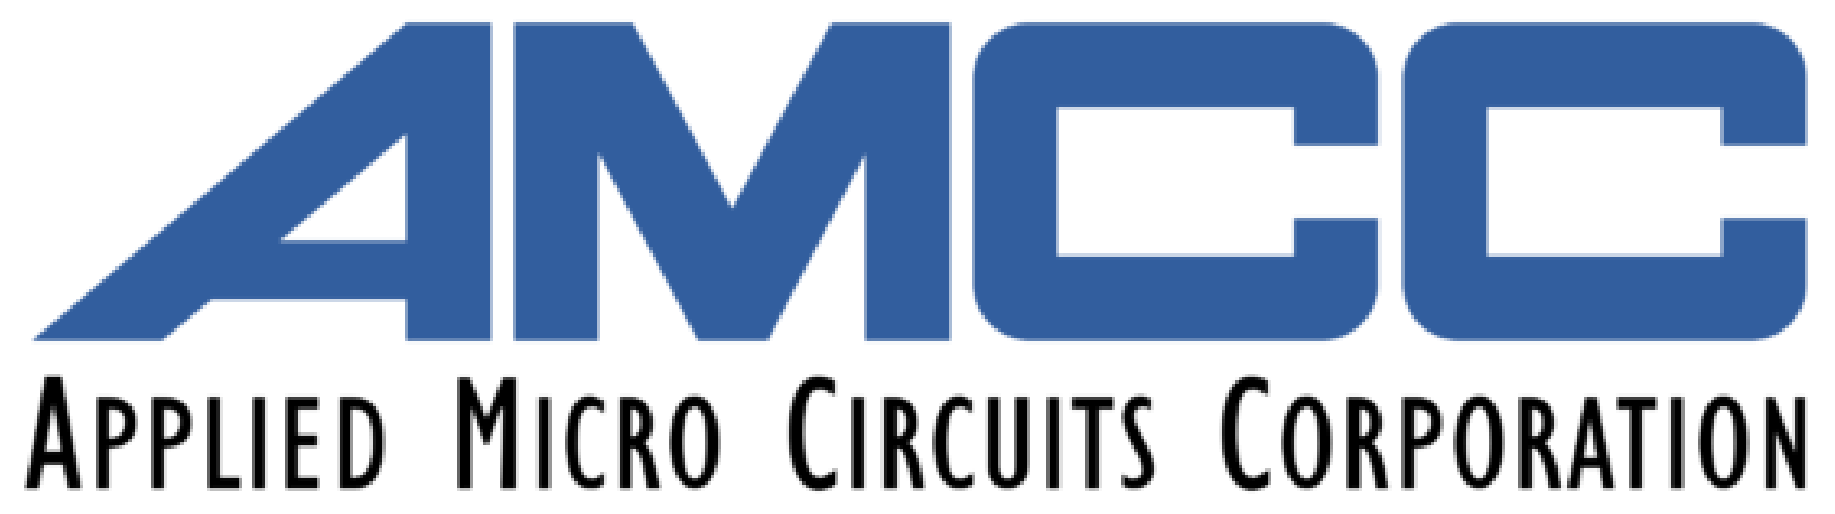 AMCC (Applied Micro Circuits Corporation)